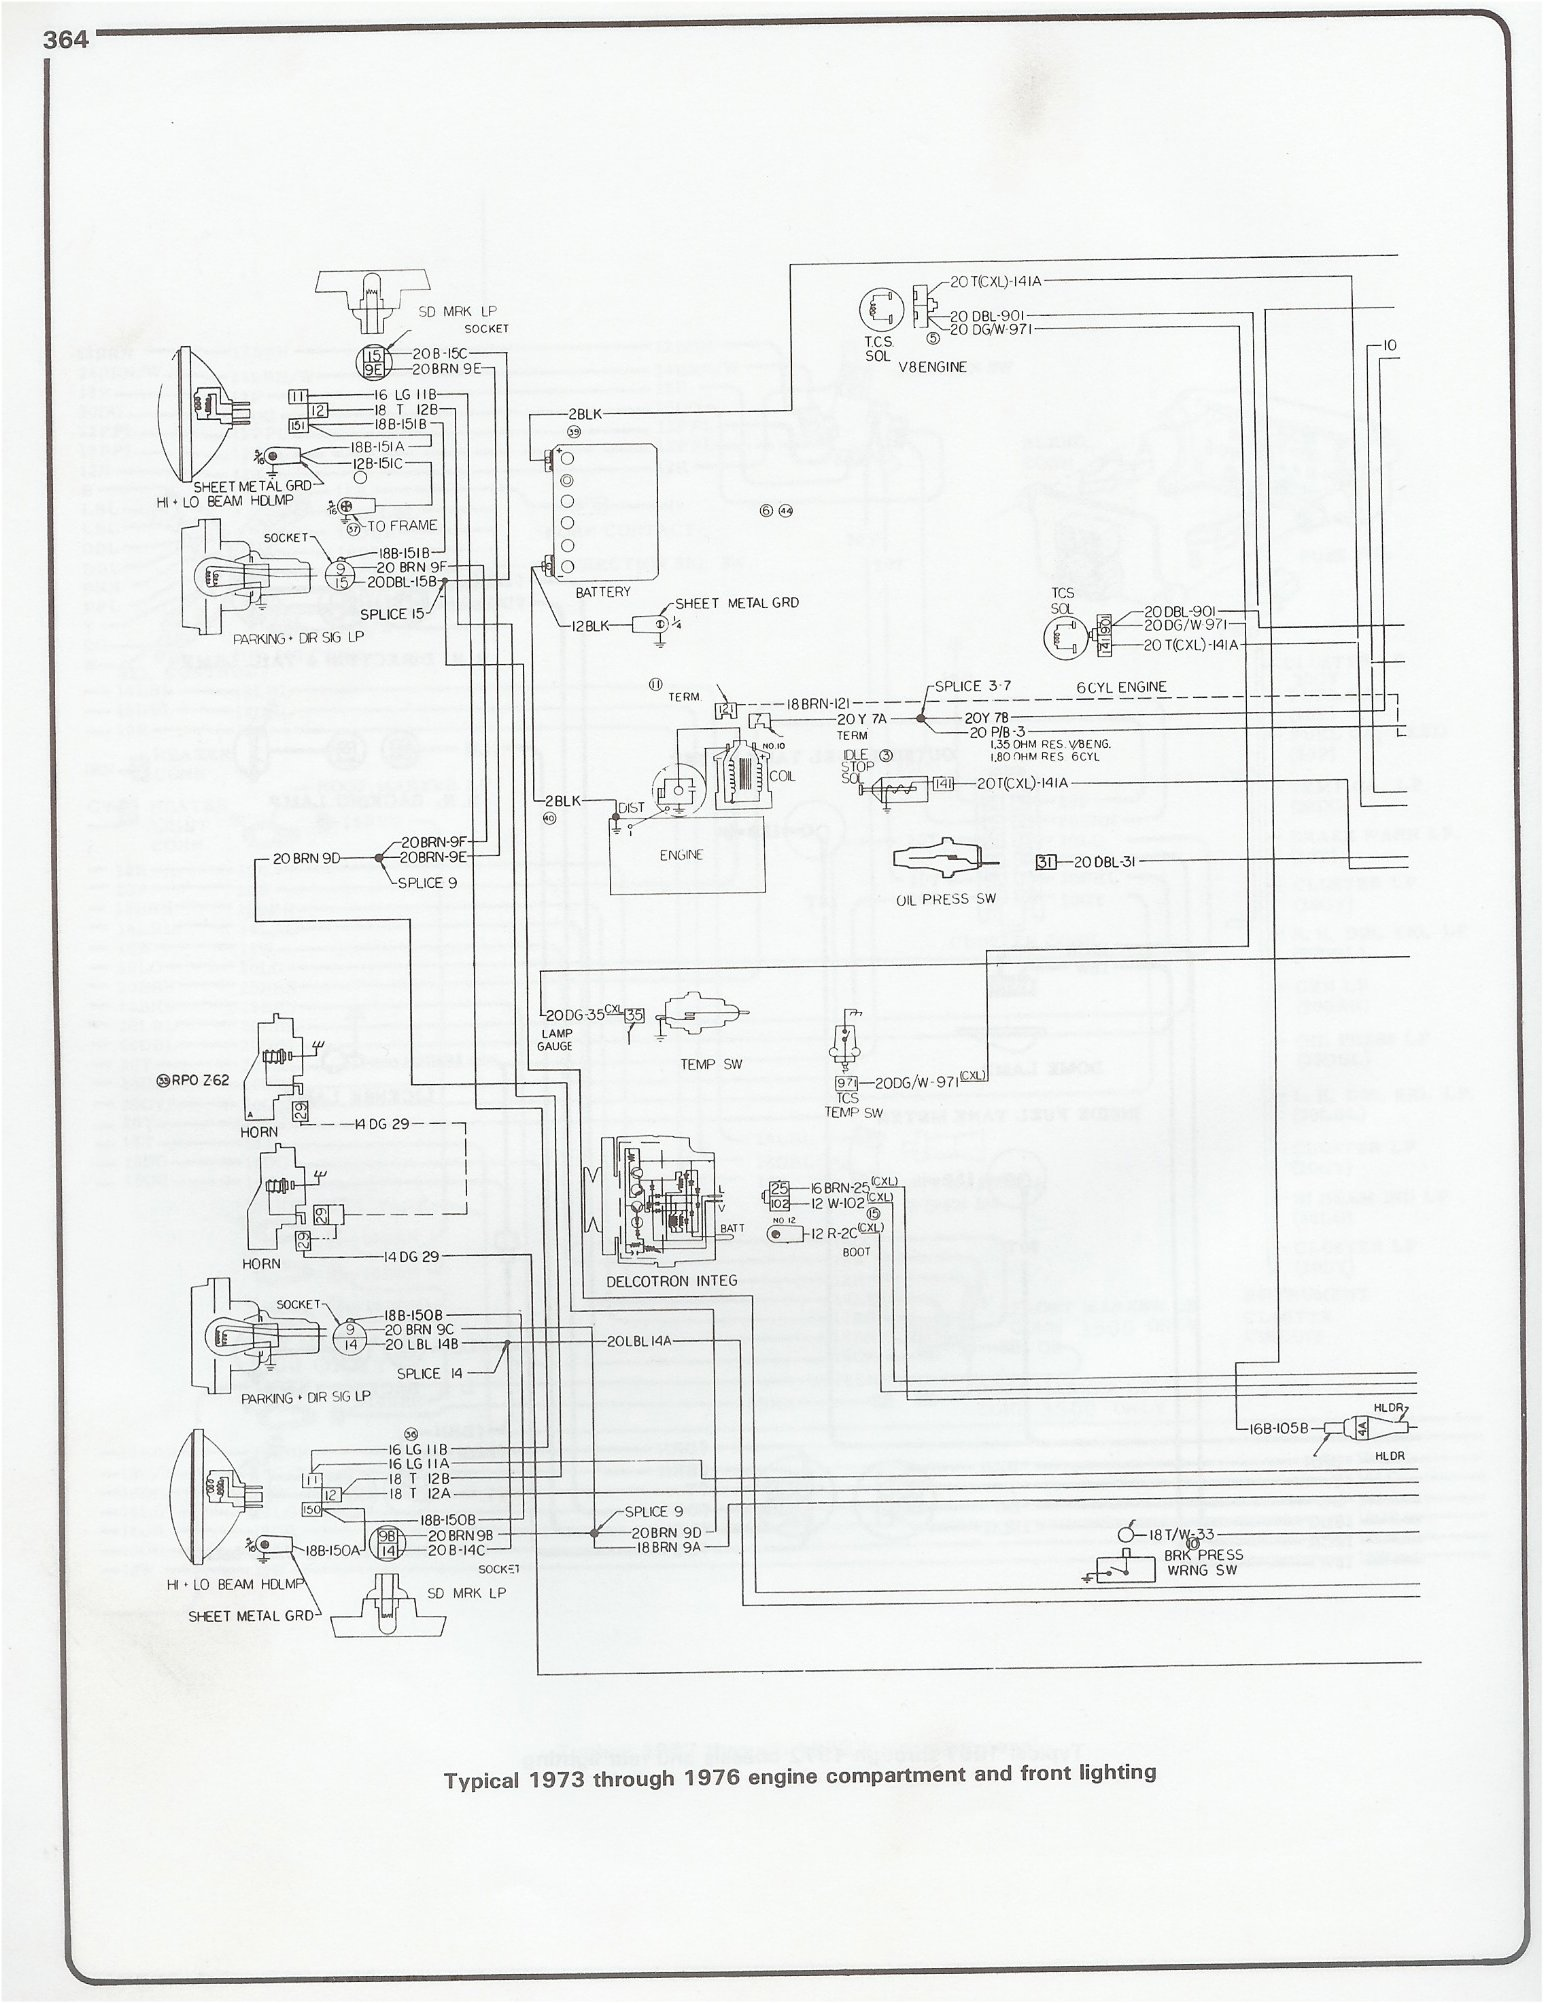 73 76_eng_frt_light complete 73 87 wiring diagrams 2008 Chevy Silverado Wiring Diagram at panicattacktreatment.co